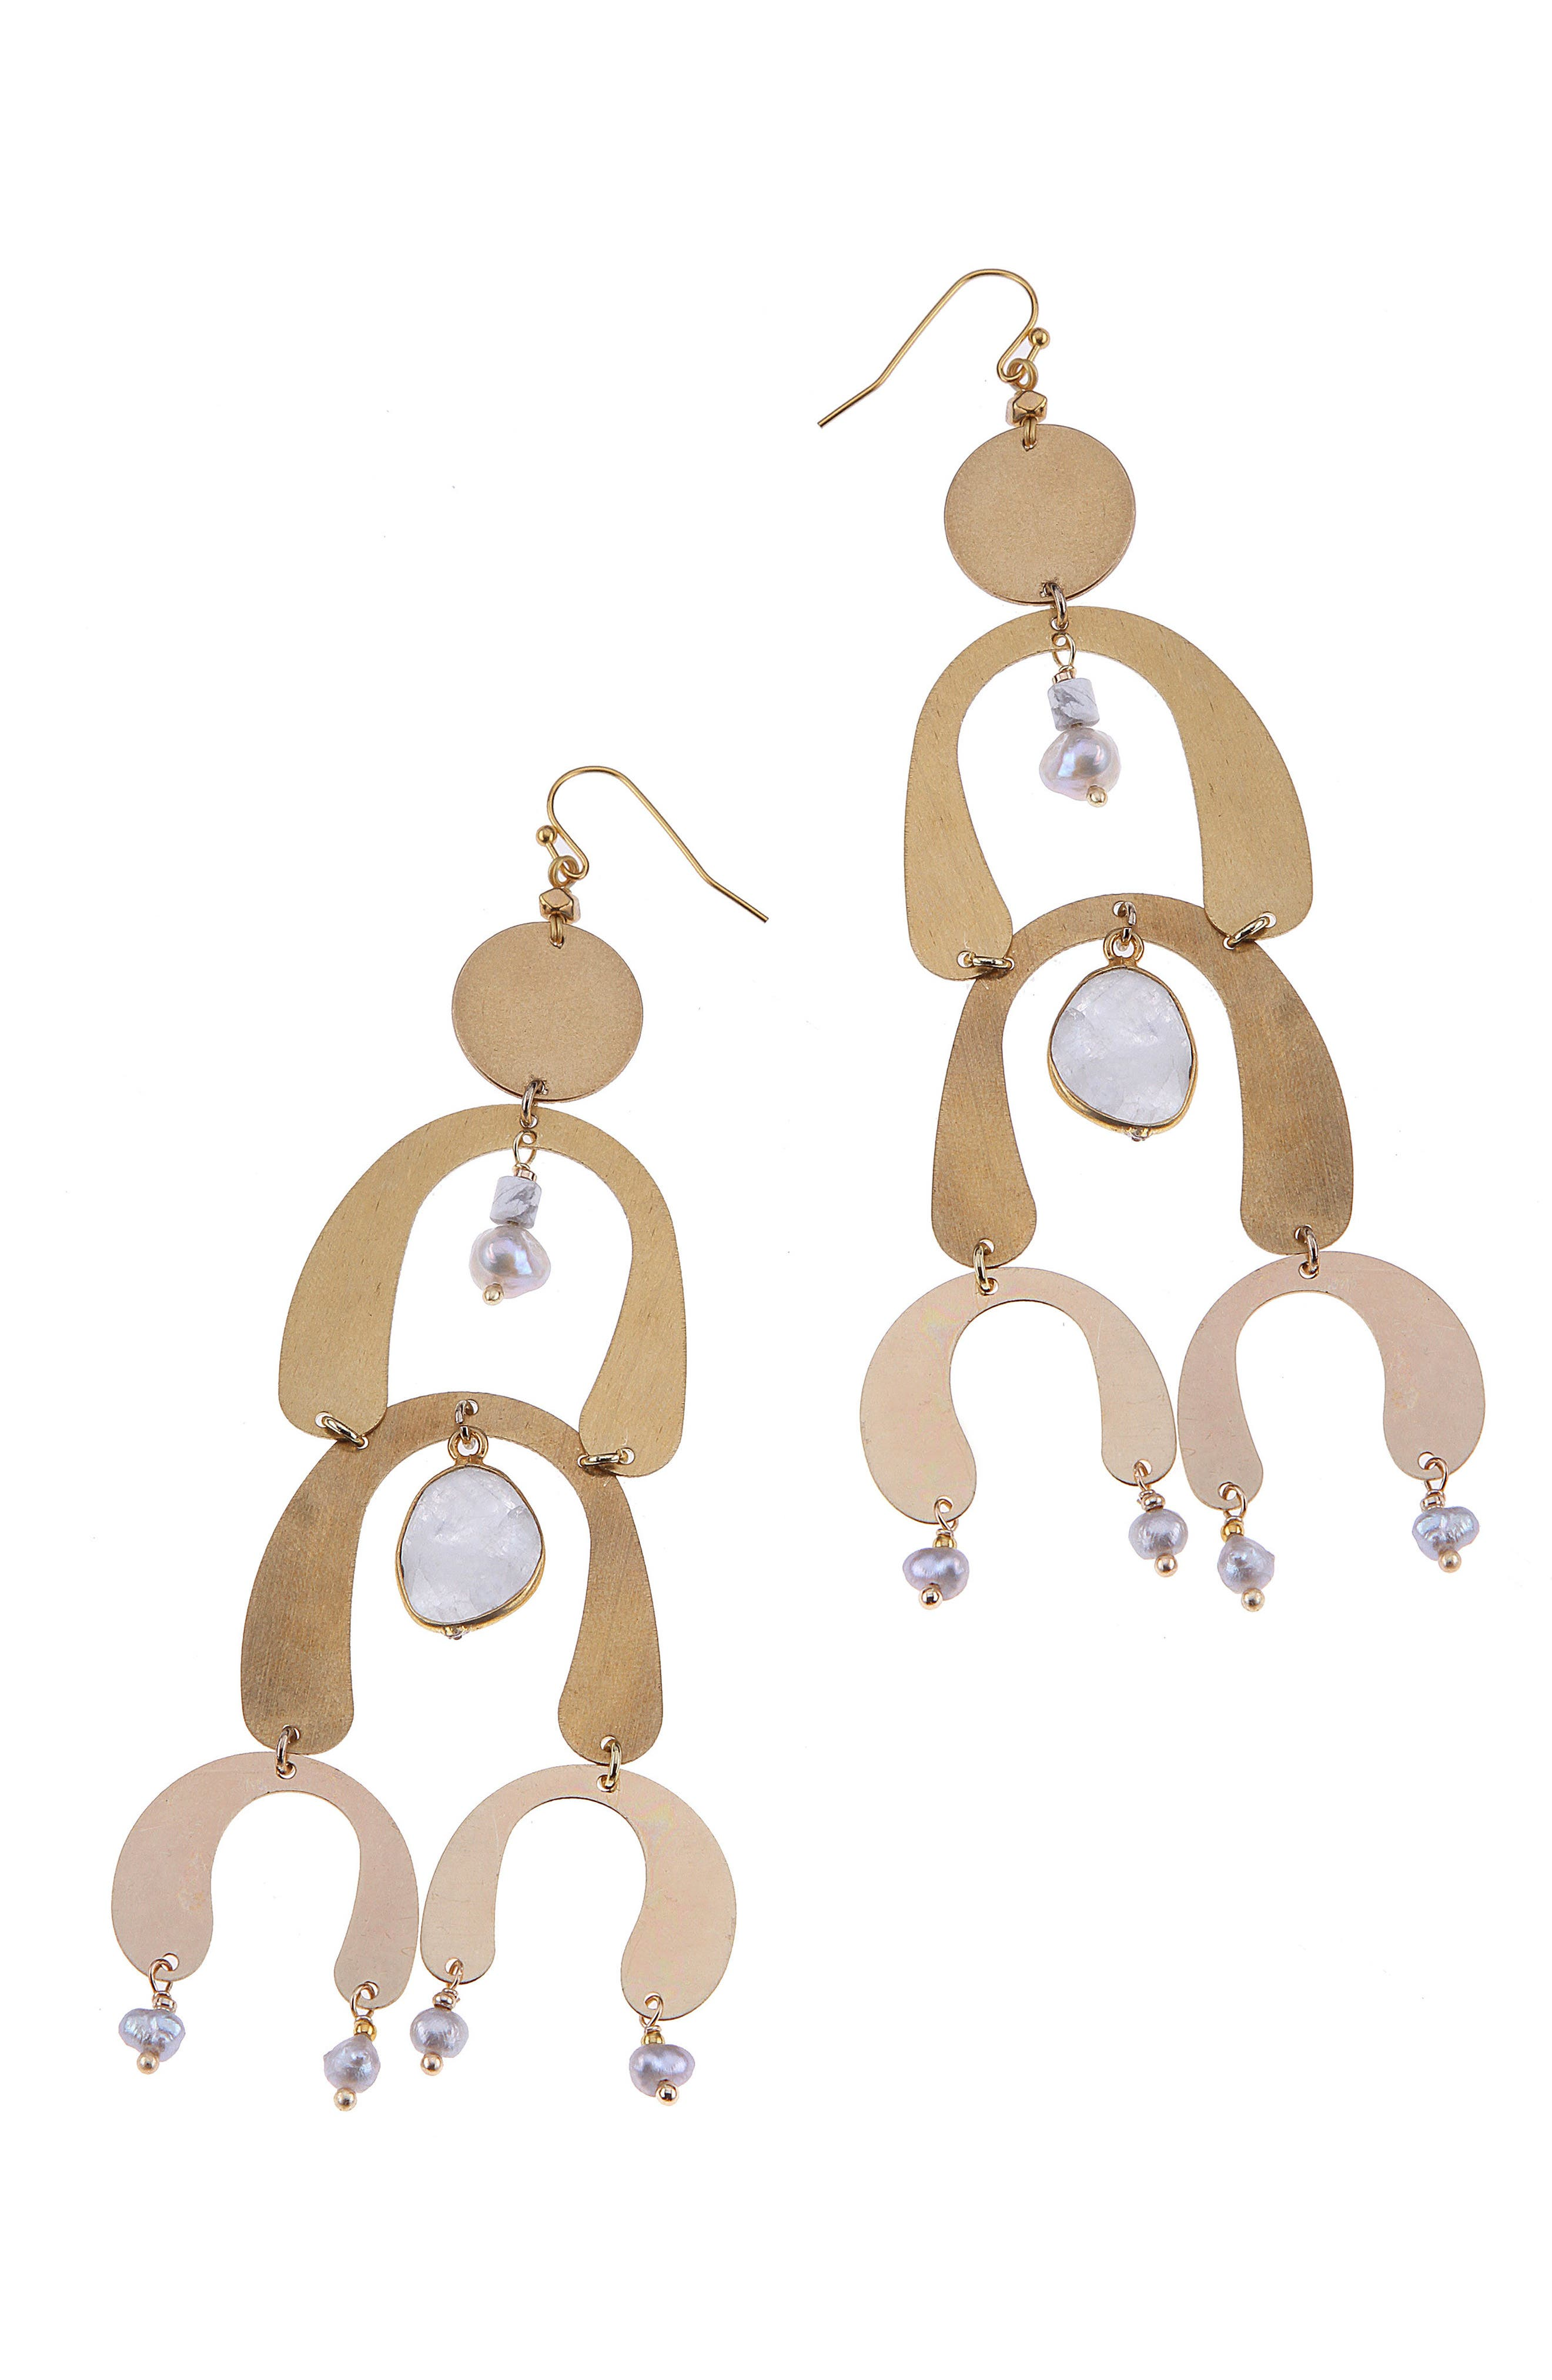 Brass Arch Moonstone & Freshwater Pearl Statement Earrings,                             Main thumbnail 1, color,                             White